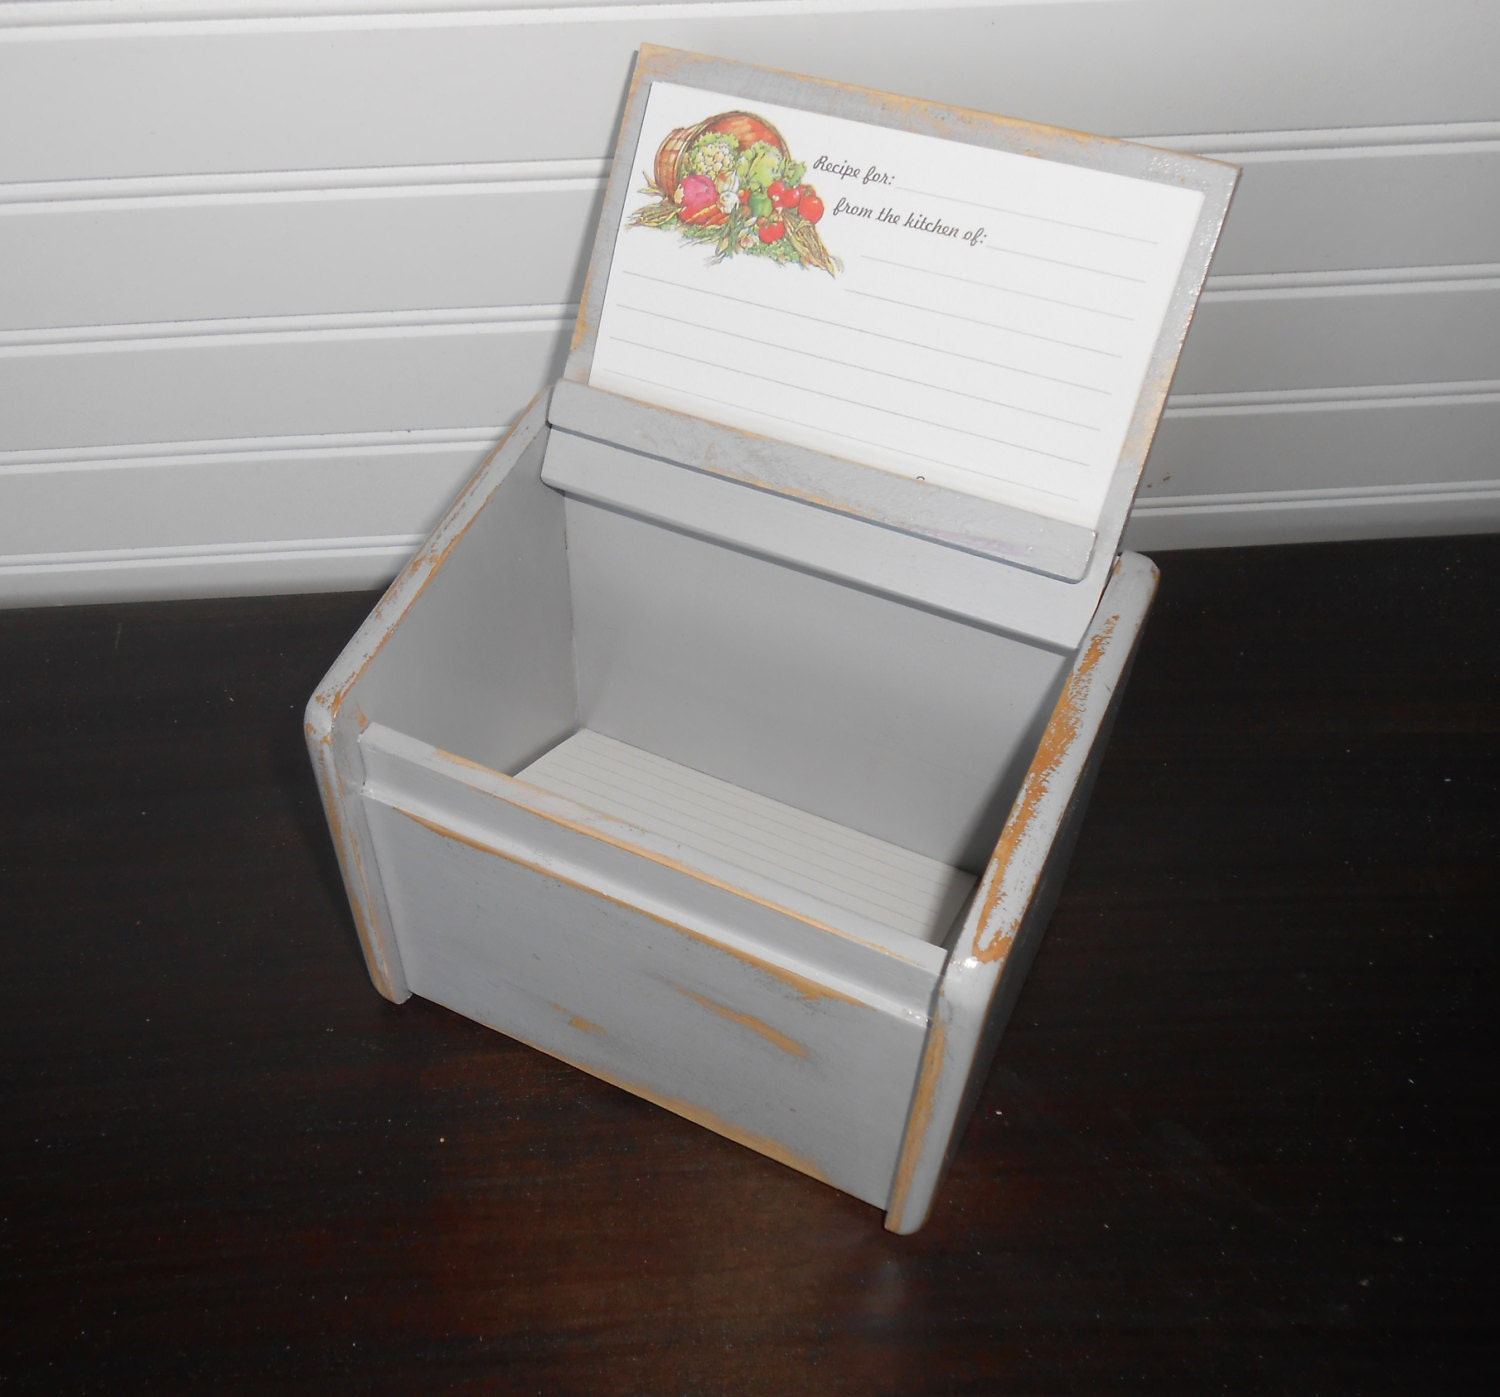 Recipes Boxes Cards Box And 10 Recipe Cards